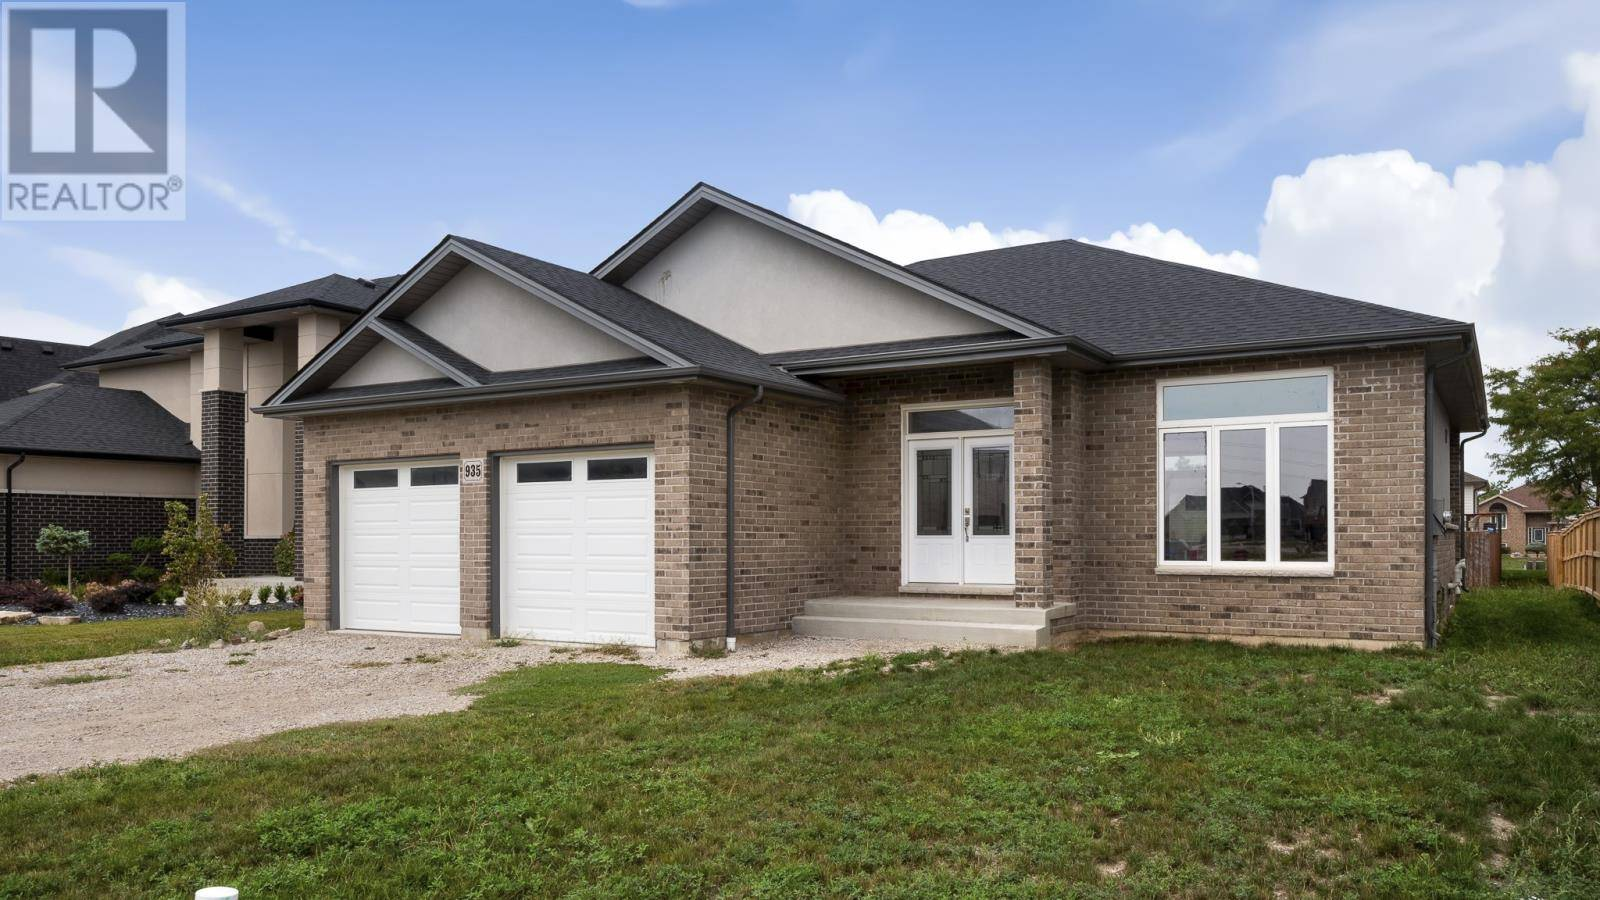 House for sale at 935 Westwood  Lakeshore Ontario - MLS: 19025175